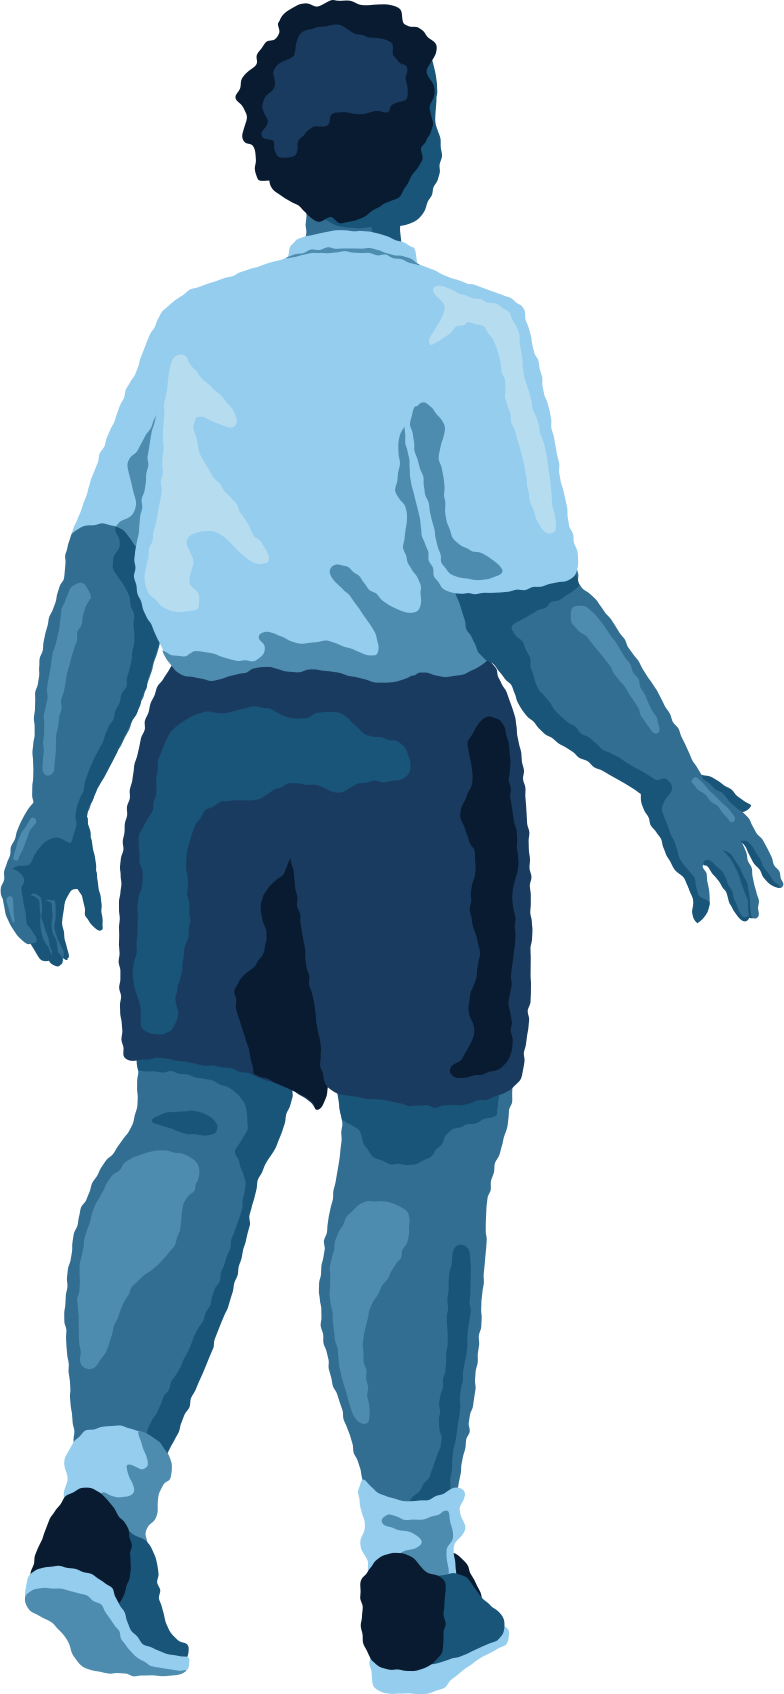 chubby man standing back Clipart illustration in PNG, SVG